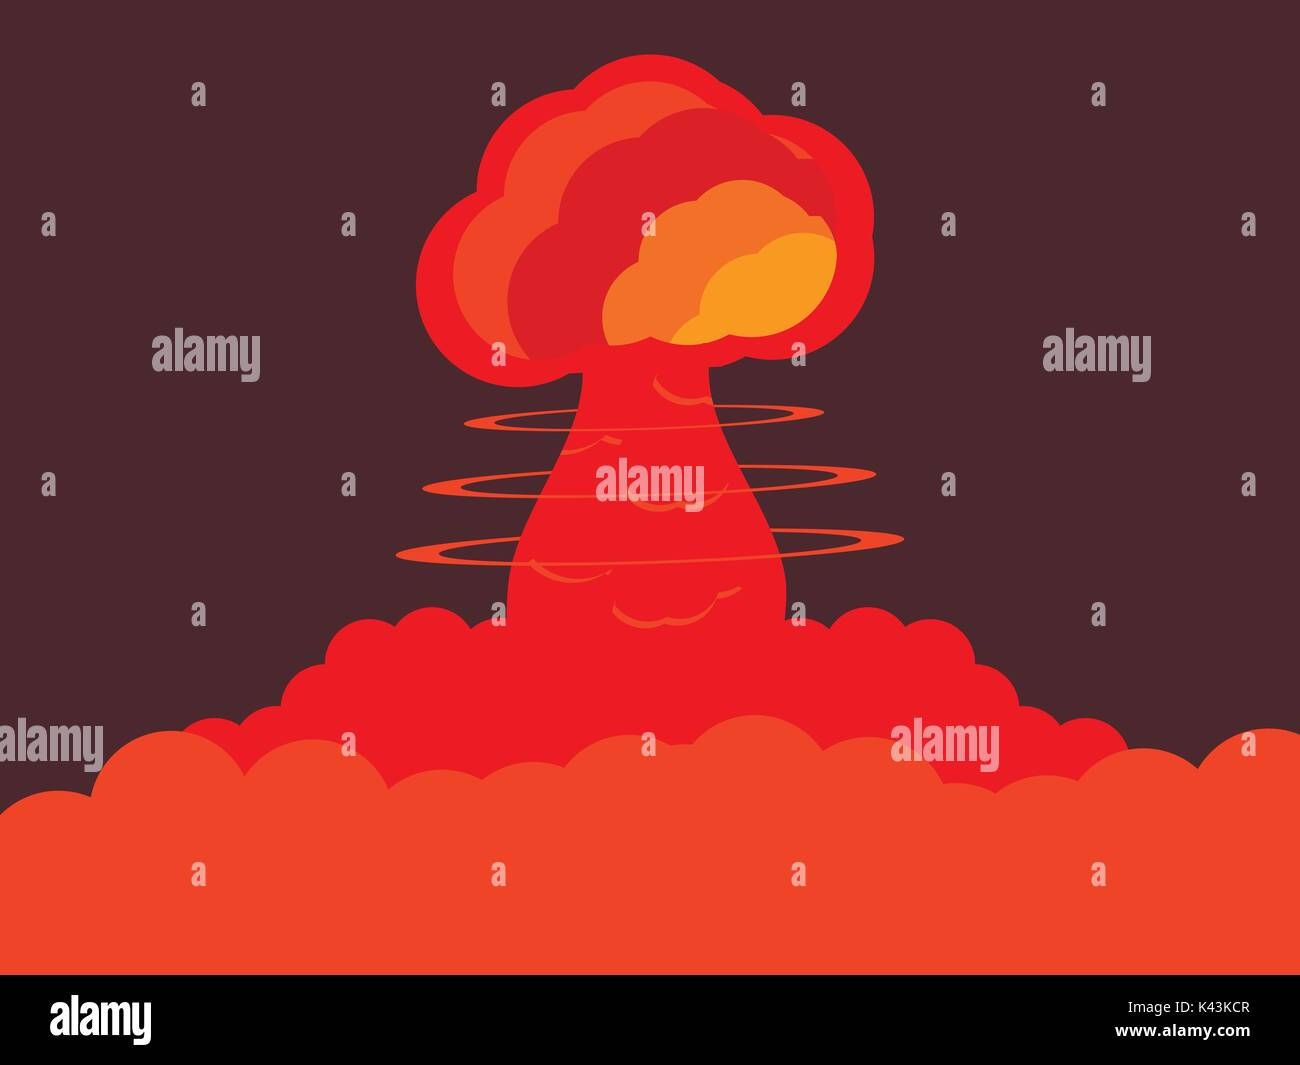 Nuclear explosion. Atomic bomb. Vector illustration - Stock Vector